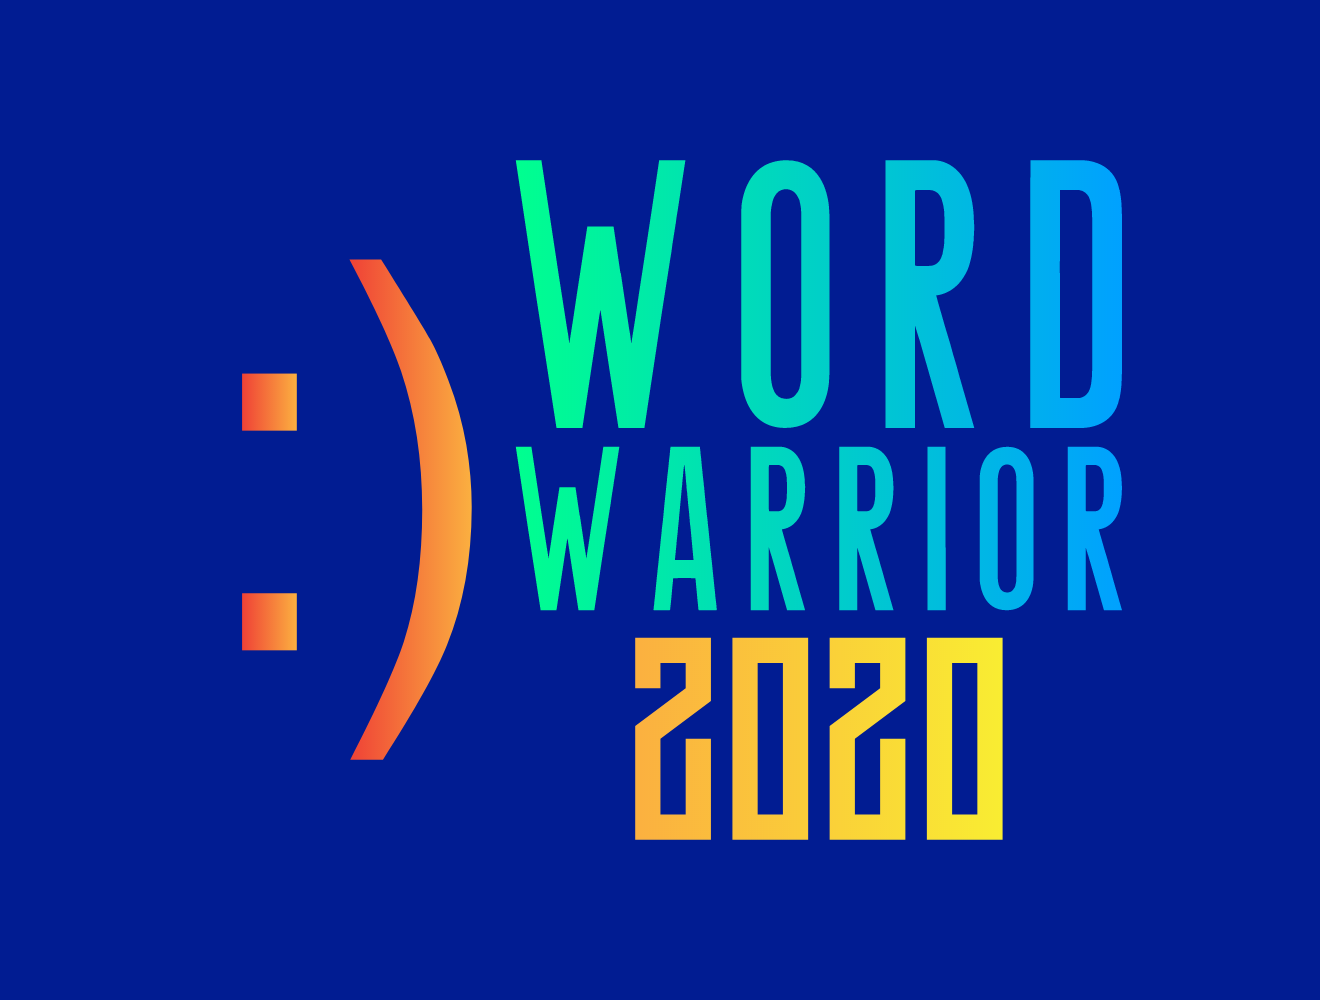 PERFECT VISION IN 2020